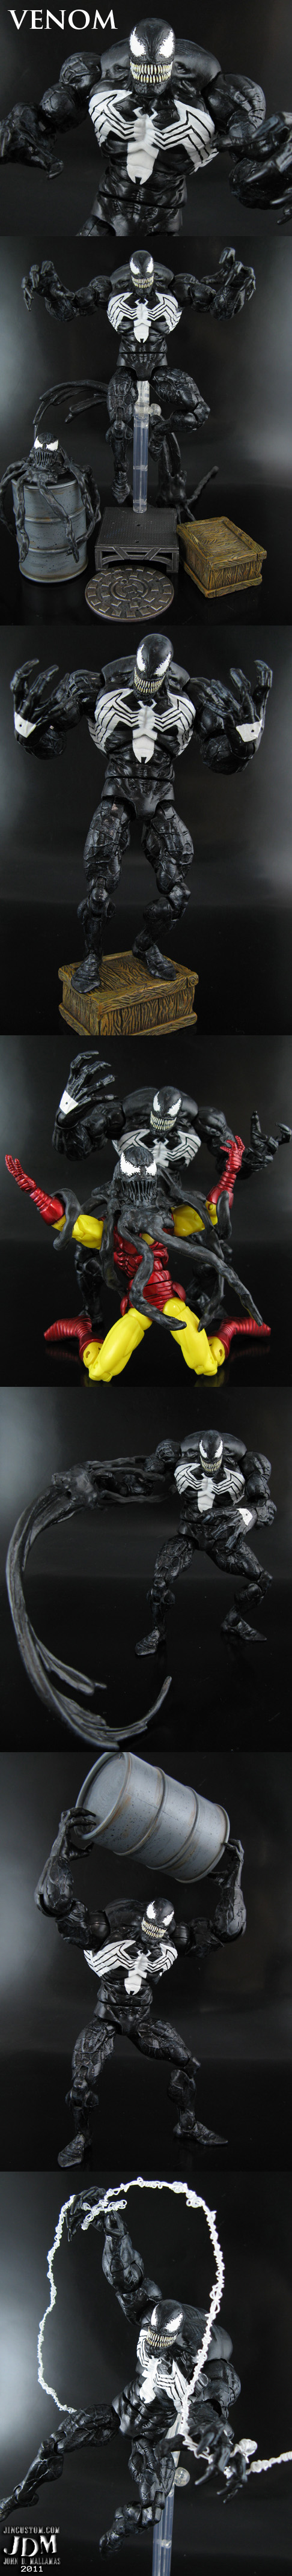 Custom Venom Action Figure